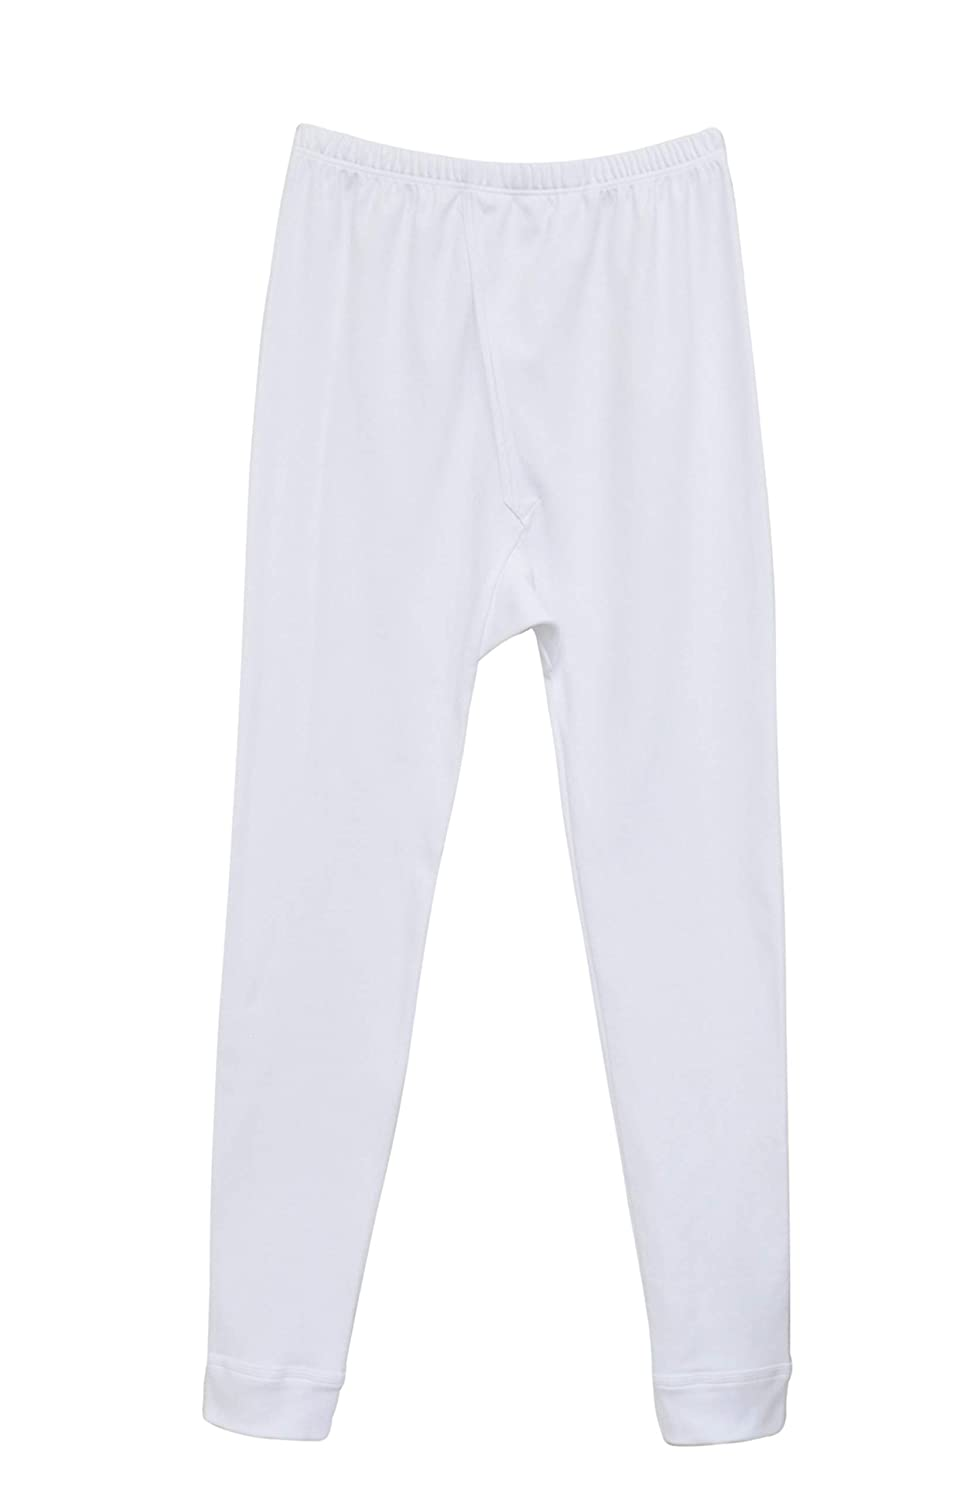 MaRe Premium Quality 100/% Brushed Cotton//Fleece Mens Long Johns Thermal Underwear Proudly Made in Italy.